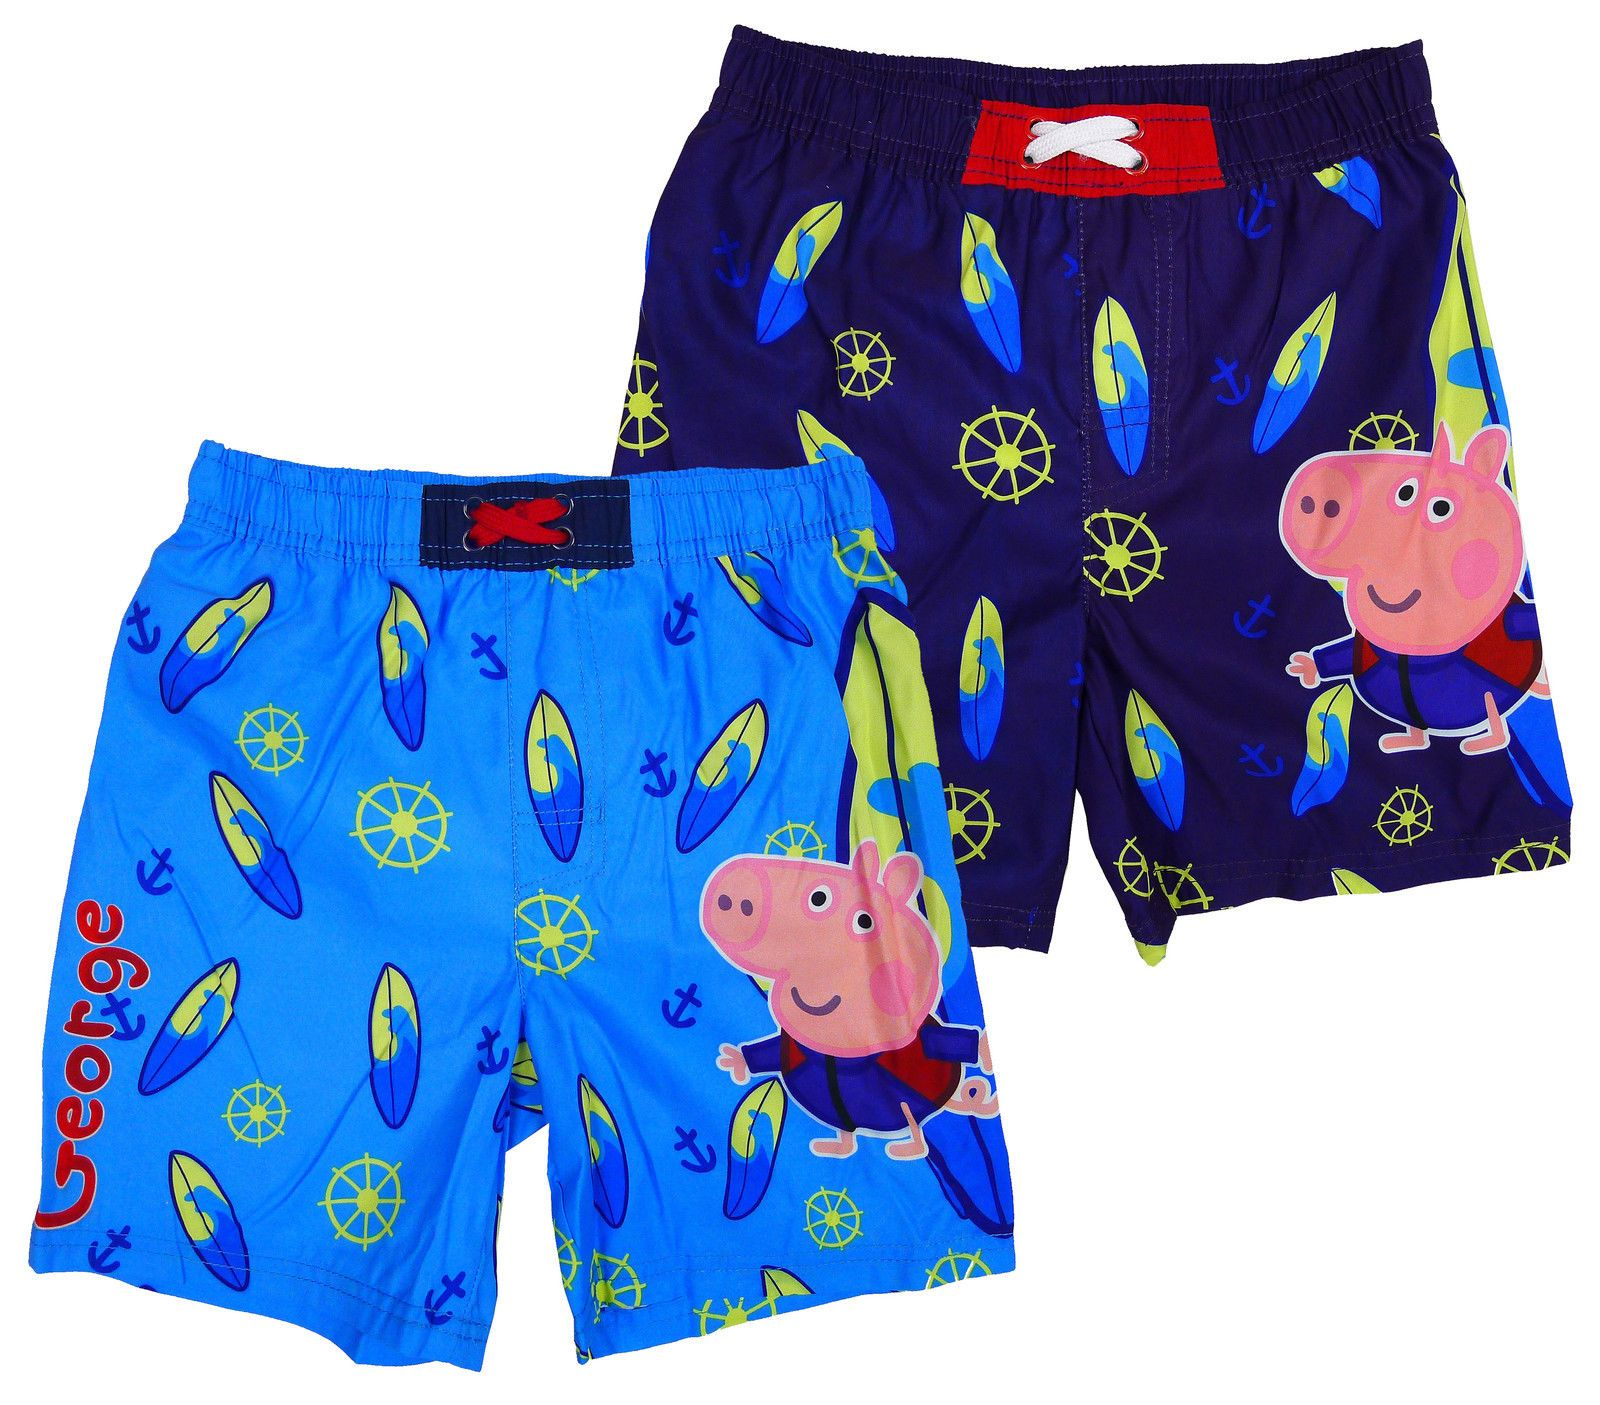 963846b1e9f19 Boys Shorts Swim Mesh Lined Official George Pig Peppa Kids Surf 4 To 8 Years